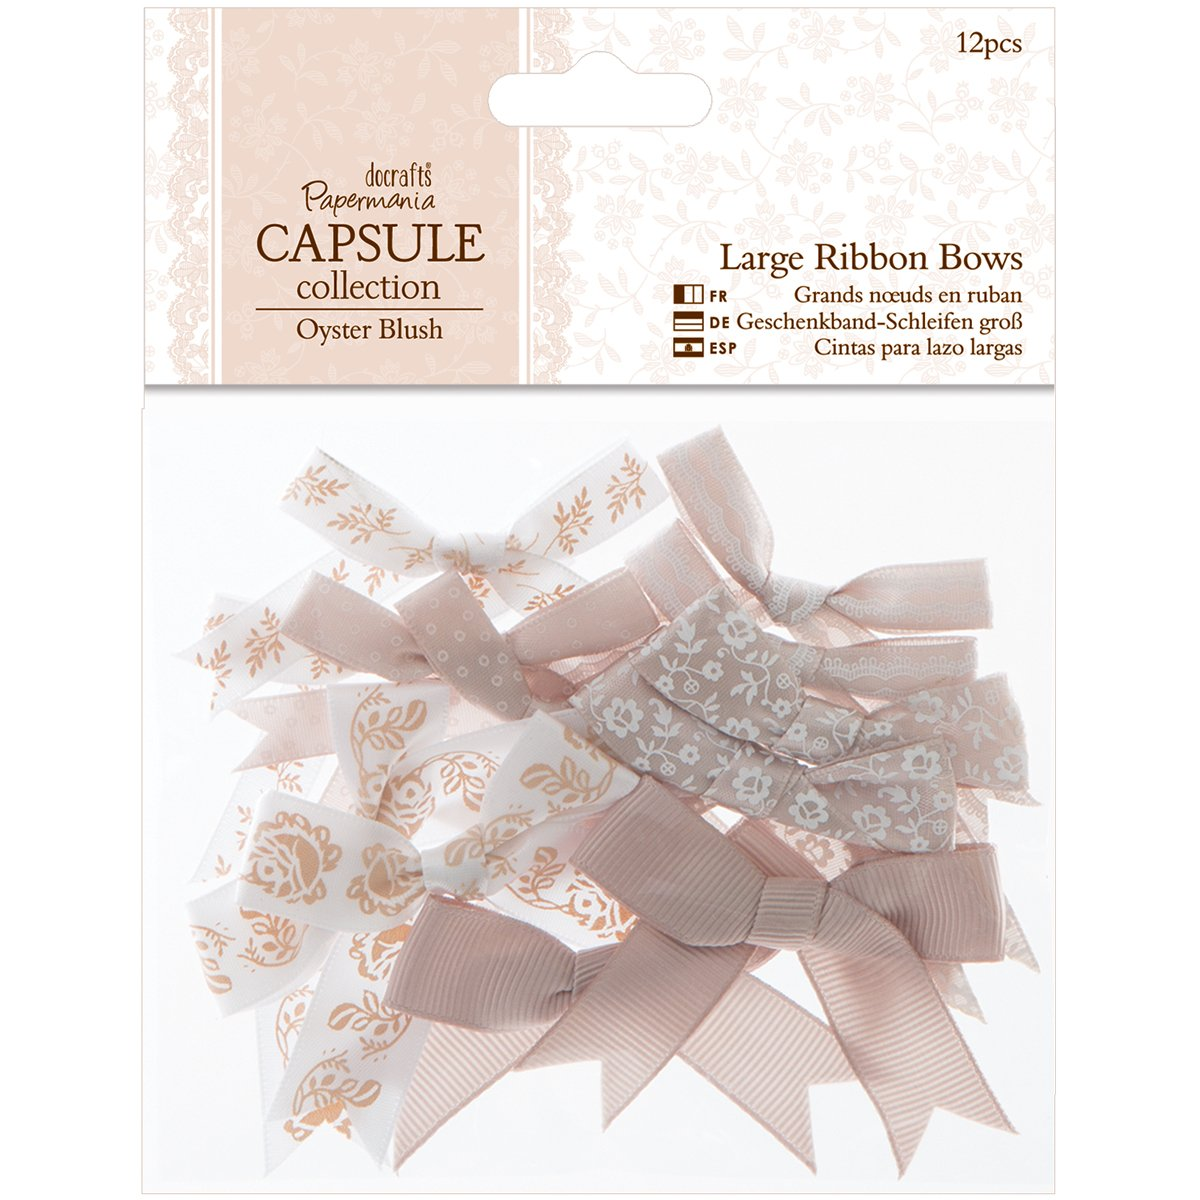 Bows Papermania 20-piece Capsule Ribbon Bow With Spots And Stripes Pastels